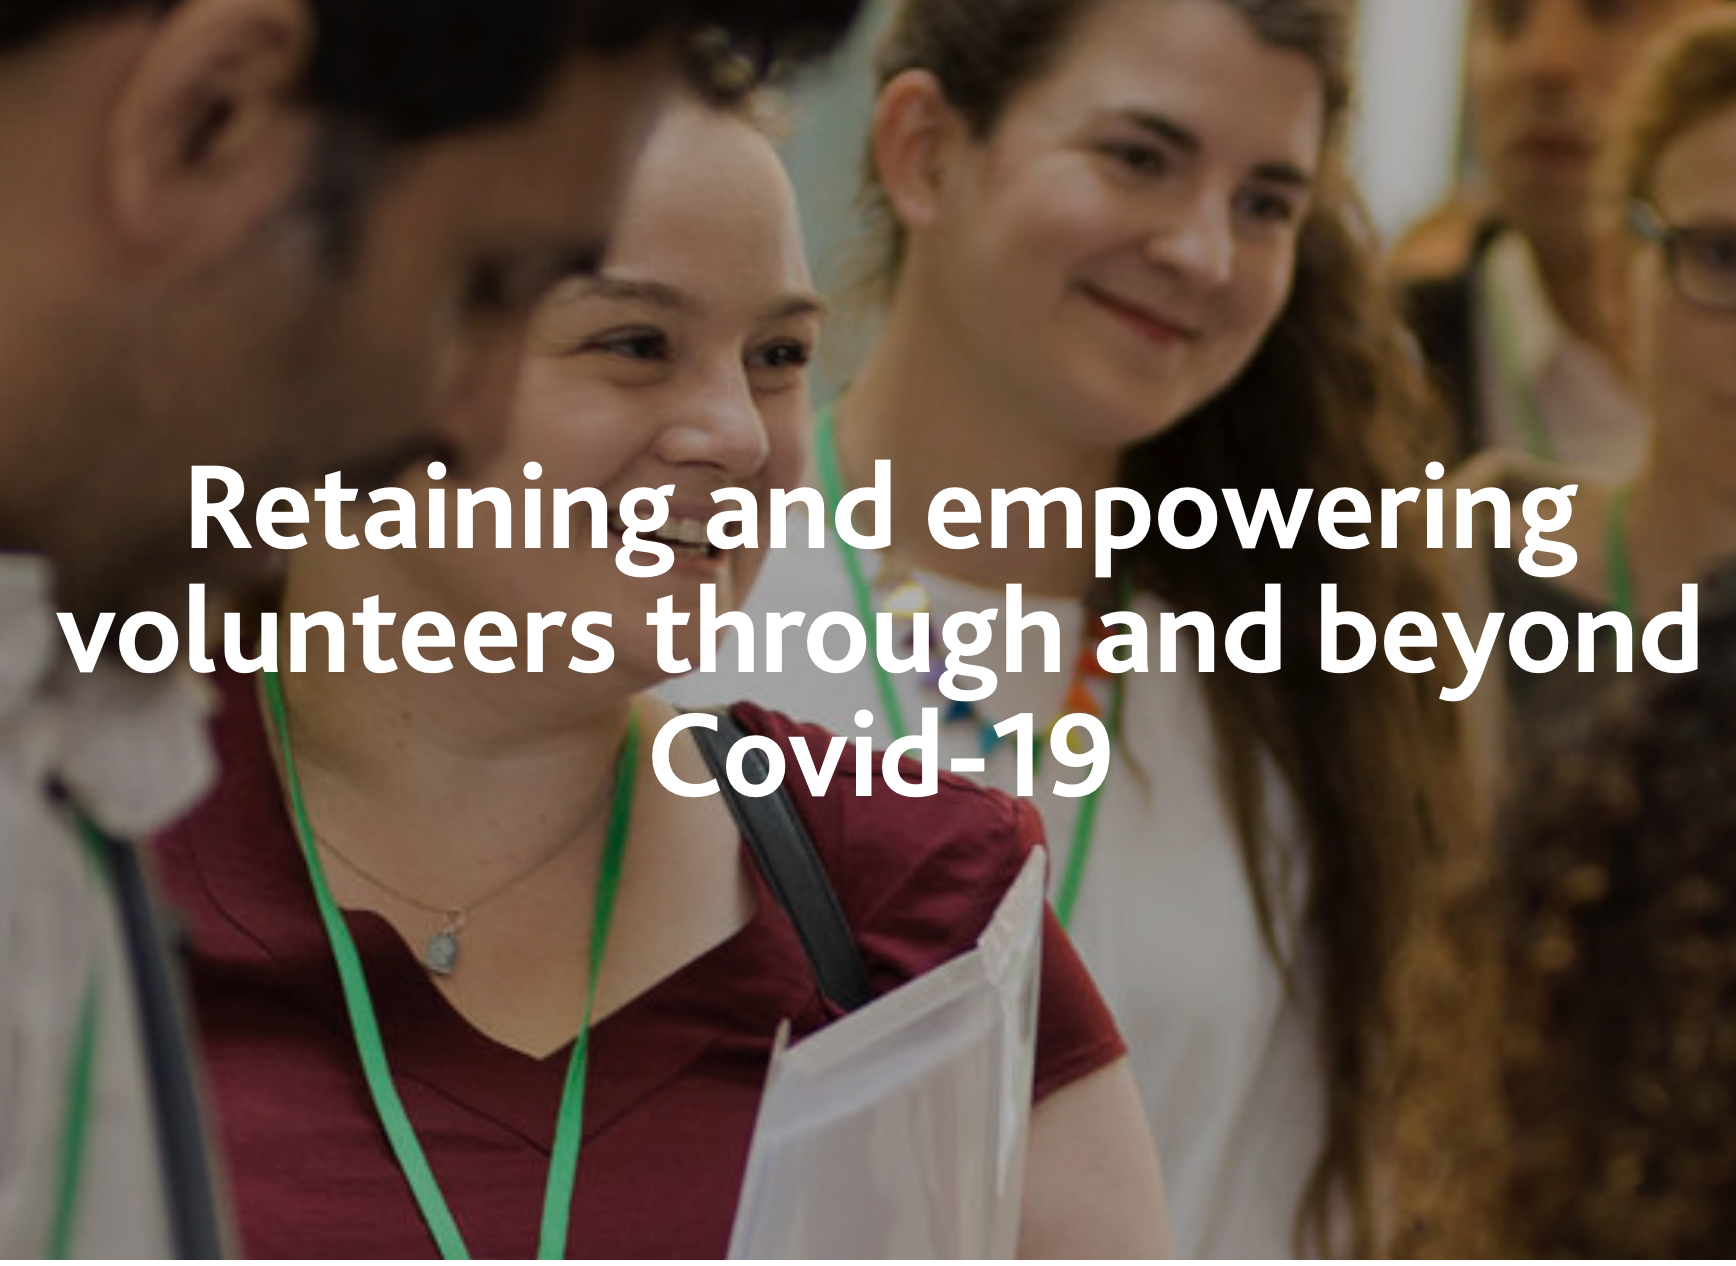 Retaining and empowering volunteers through and beyond Covid-19